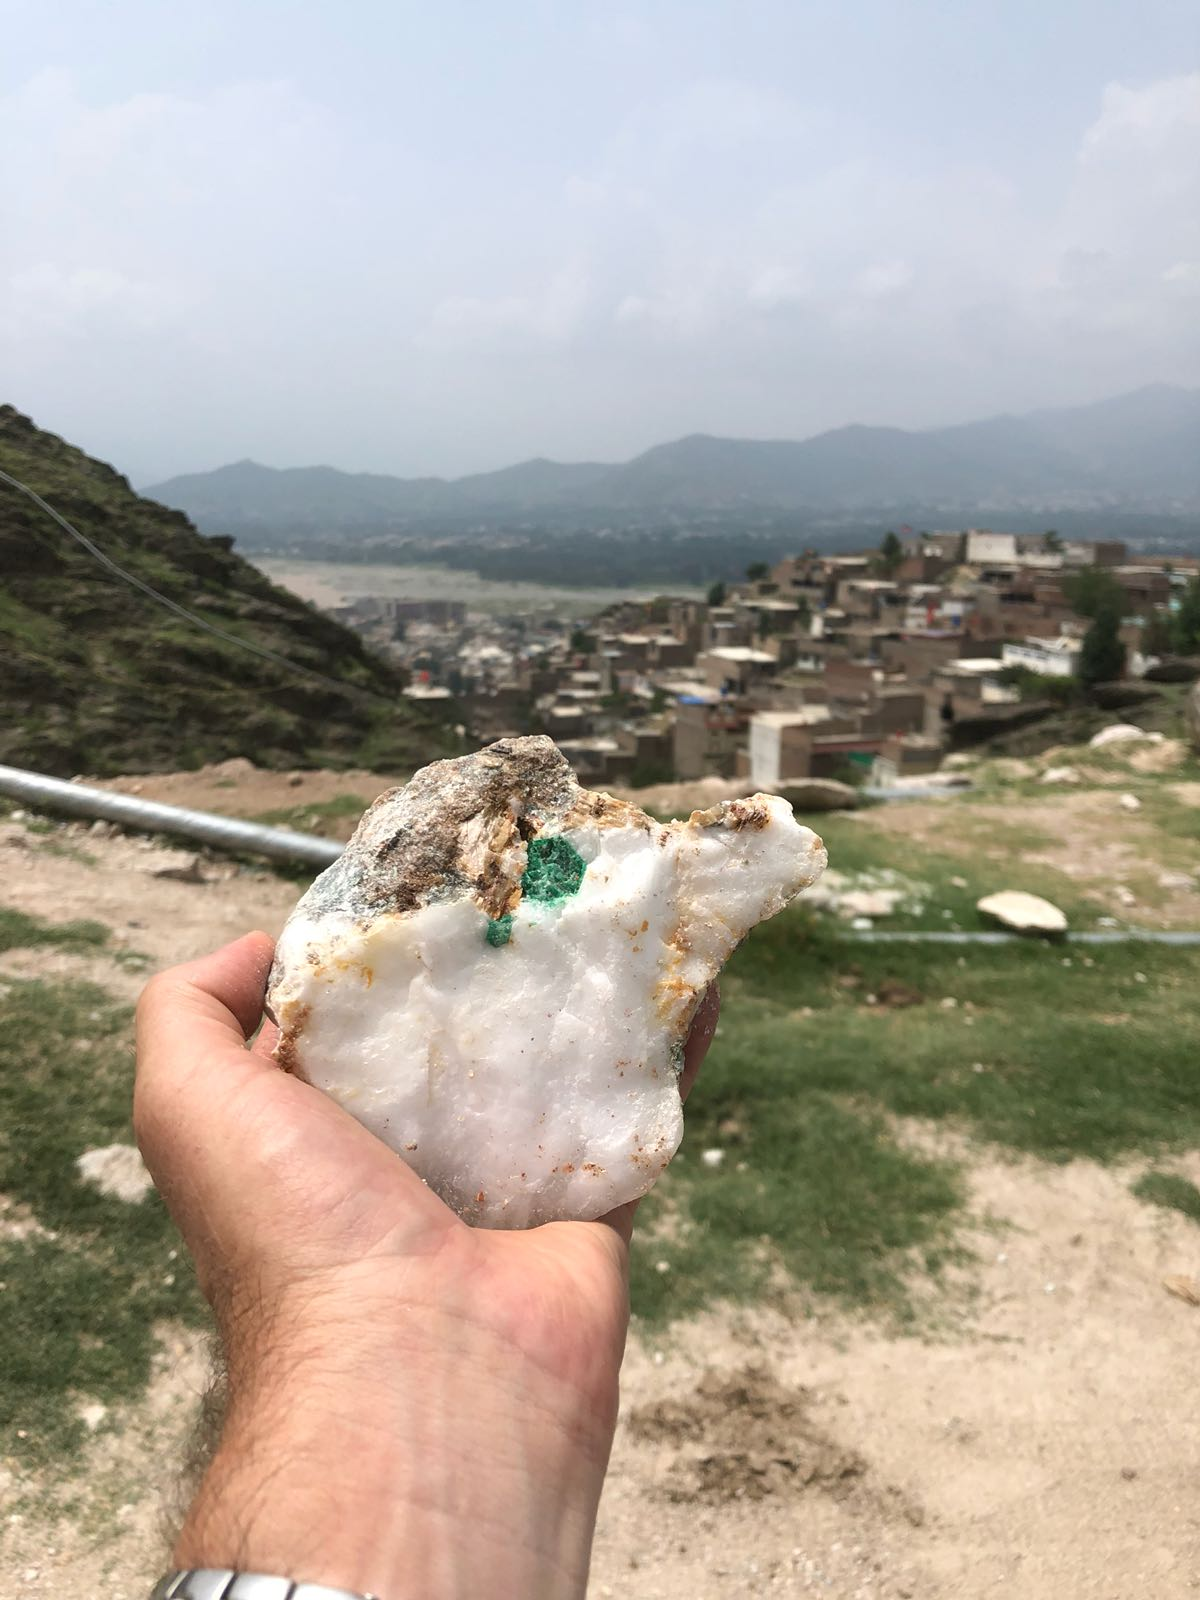 Emerald in its host rock, Swat Valley, Pakistan. <span>